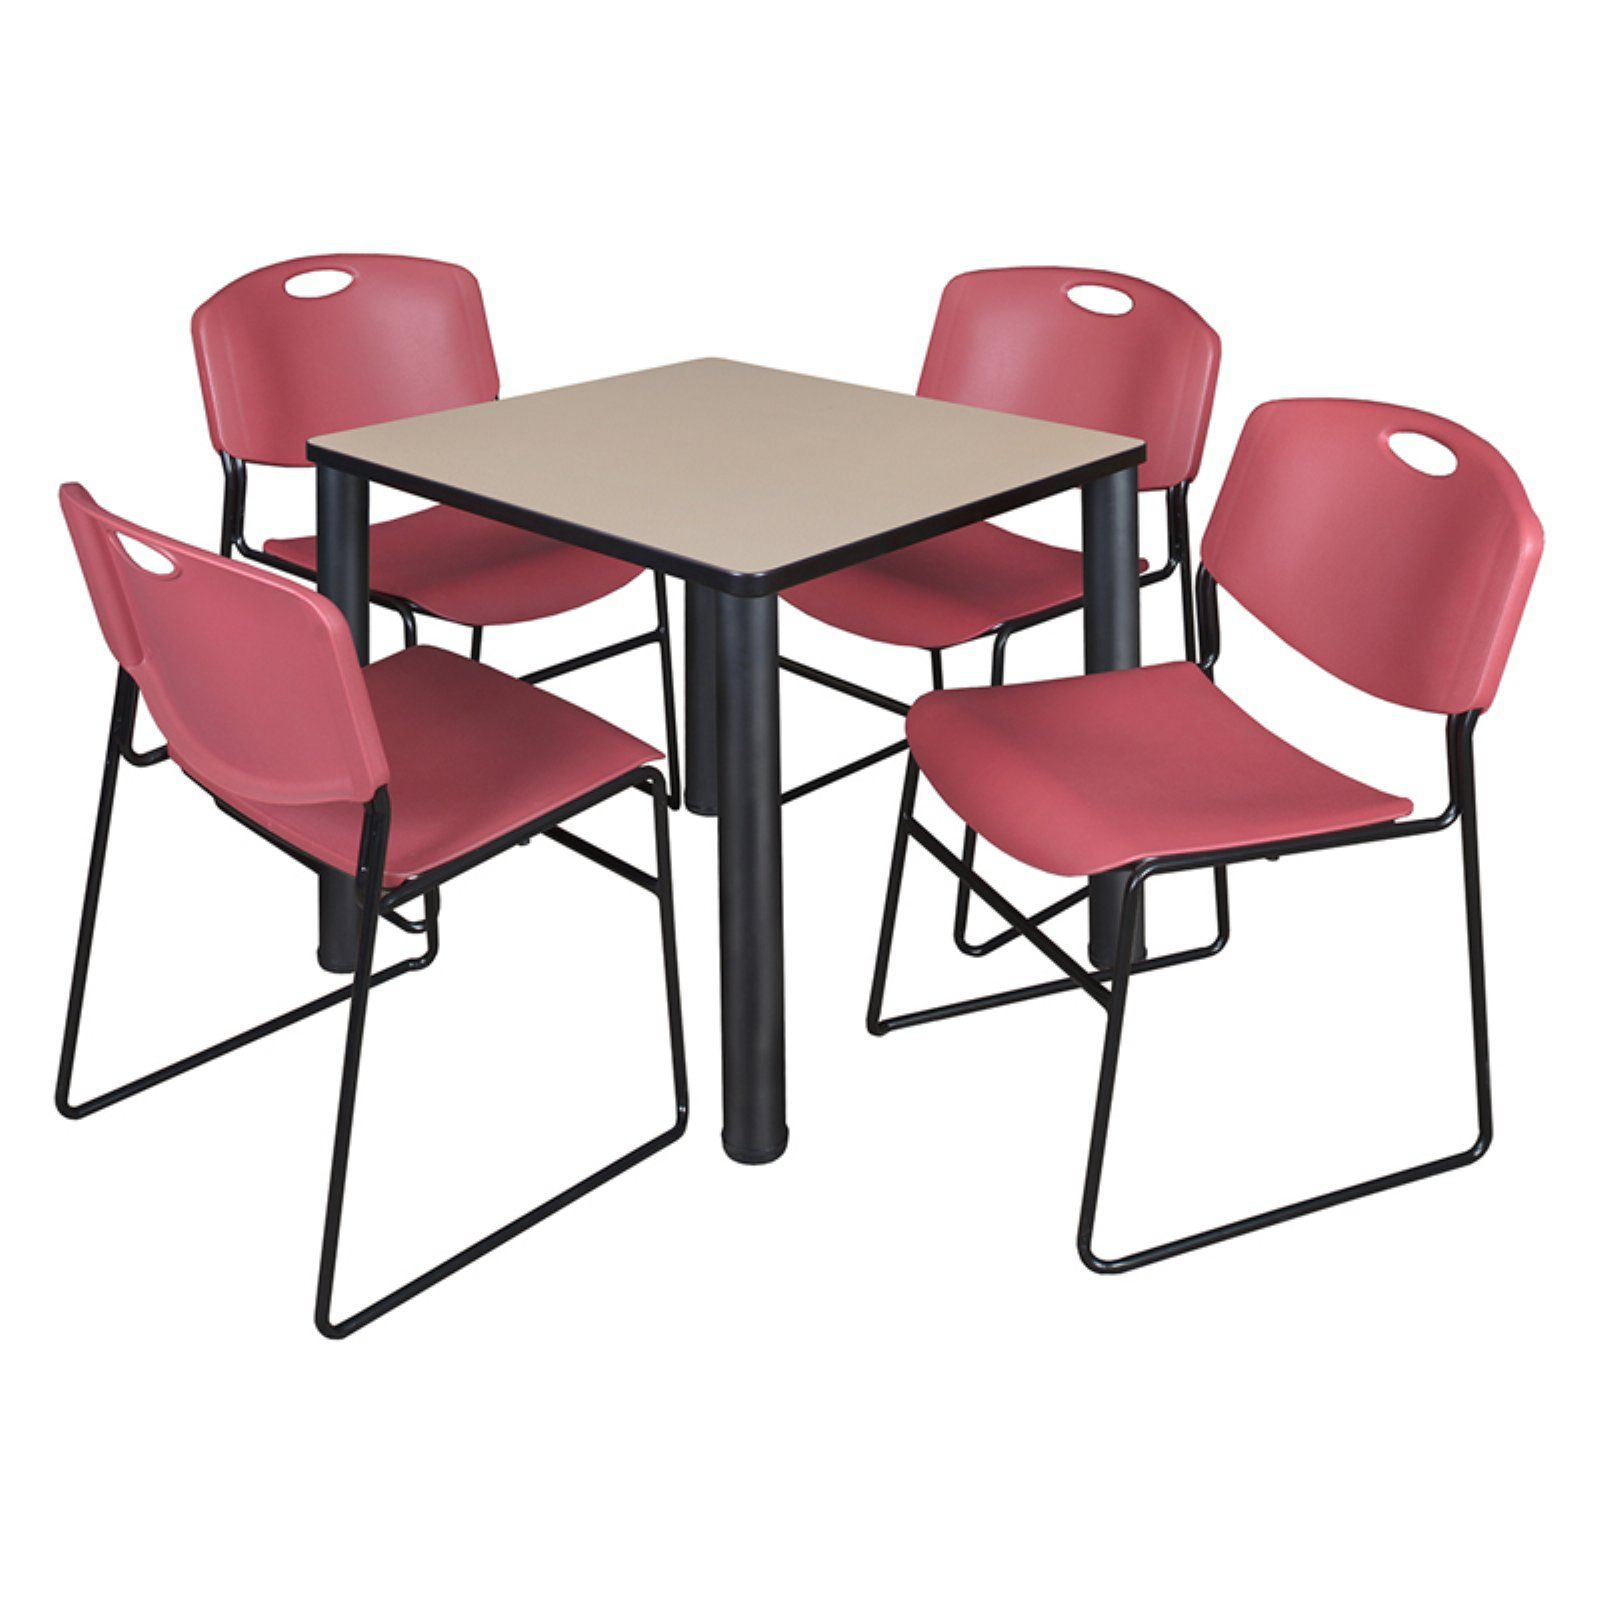 Regency Kee Square Beige Breakroom Table With 4 Stackable For Most Recent Mode Square Breakroom Tables (View 11 of 15)